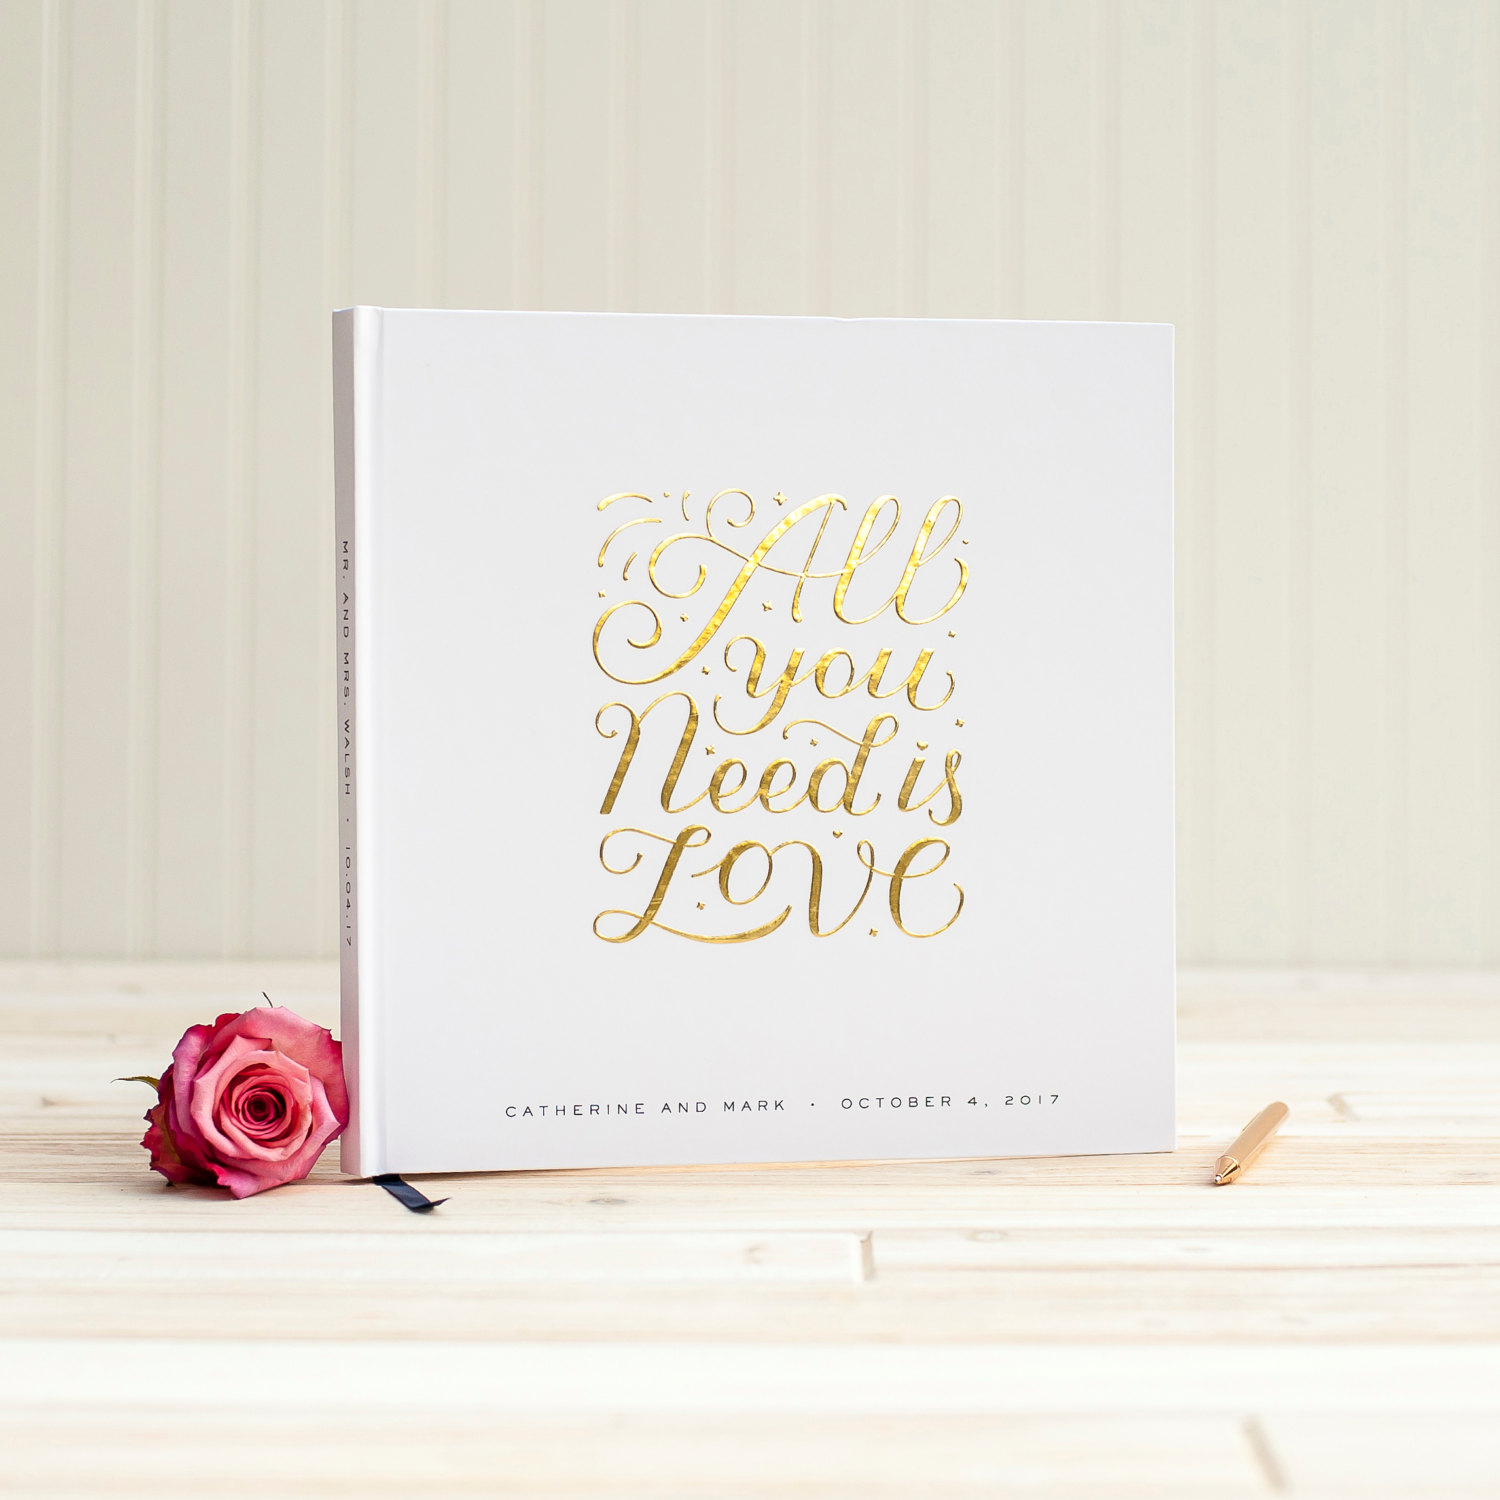 Gold Foil Guest Books - made from real foil! By Starboard Press. | https://emmalinebride.com/wedding/gold-foil-guest-books/